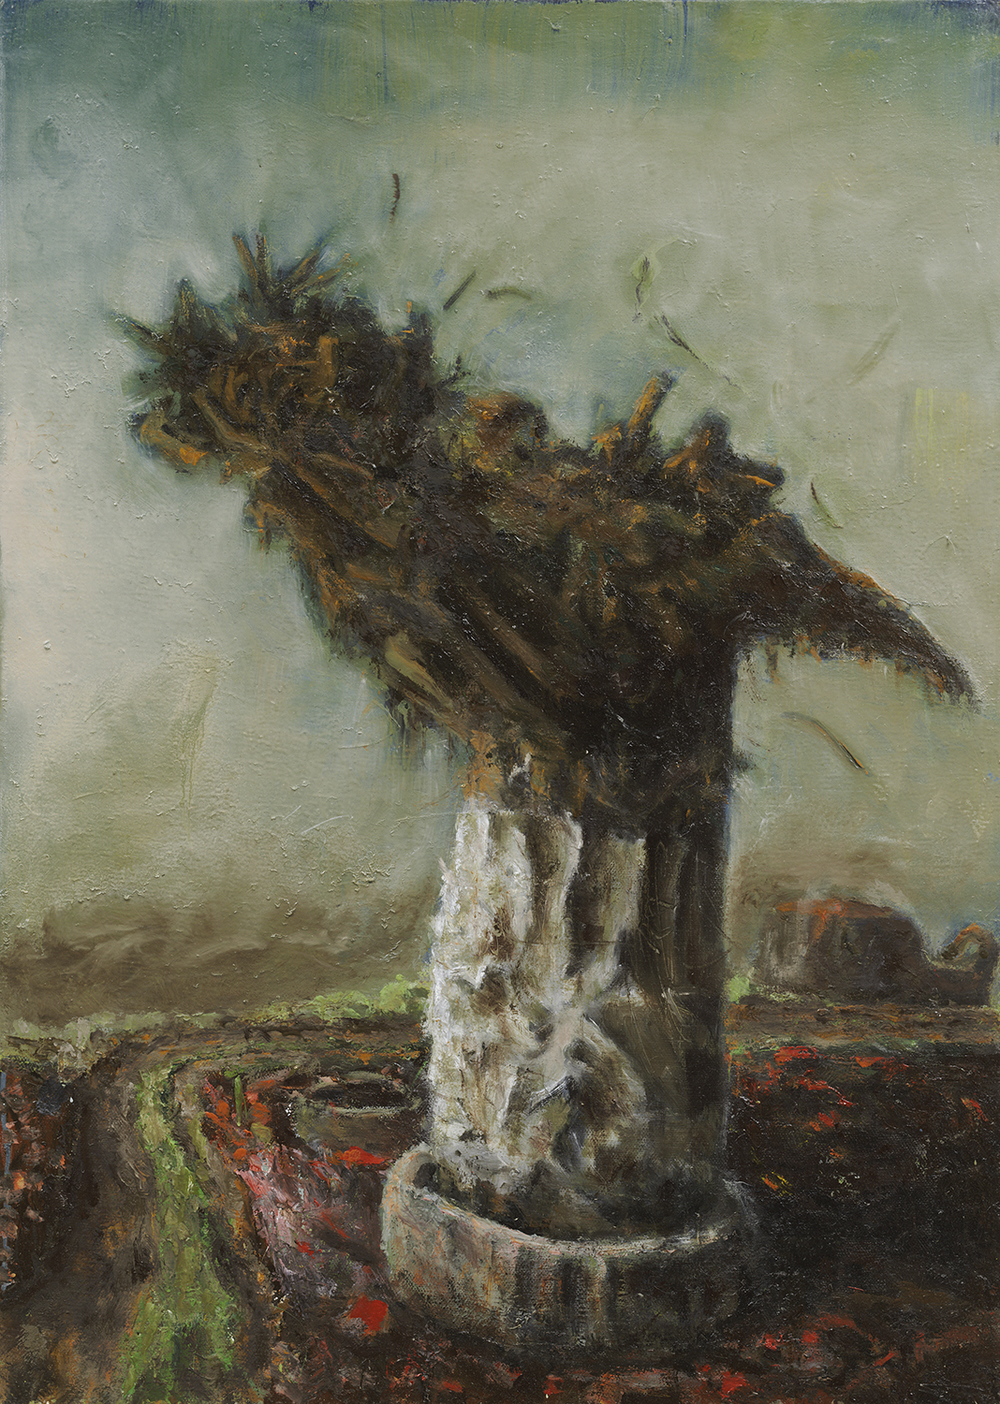 Cristof Yvorè,  Untitled,  008, oil on canvas, 41 x 29 1/4 inches